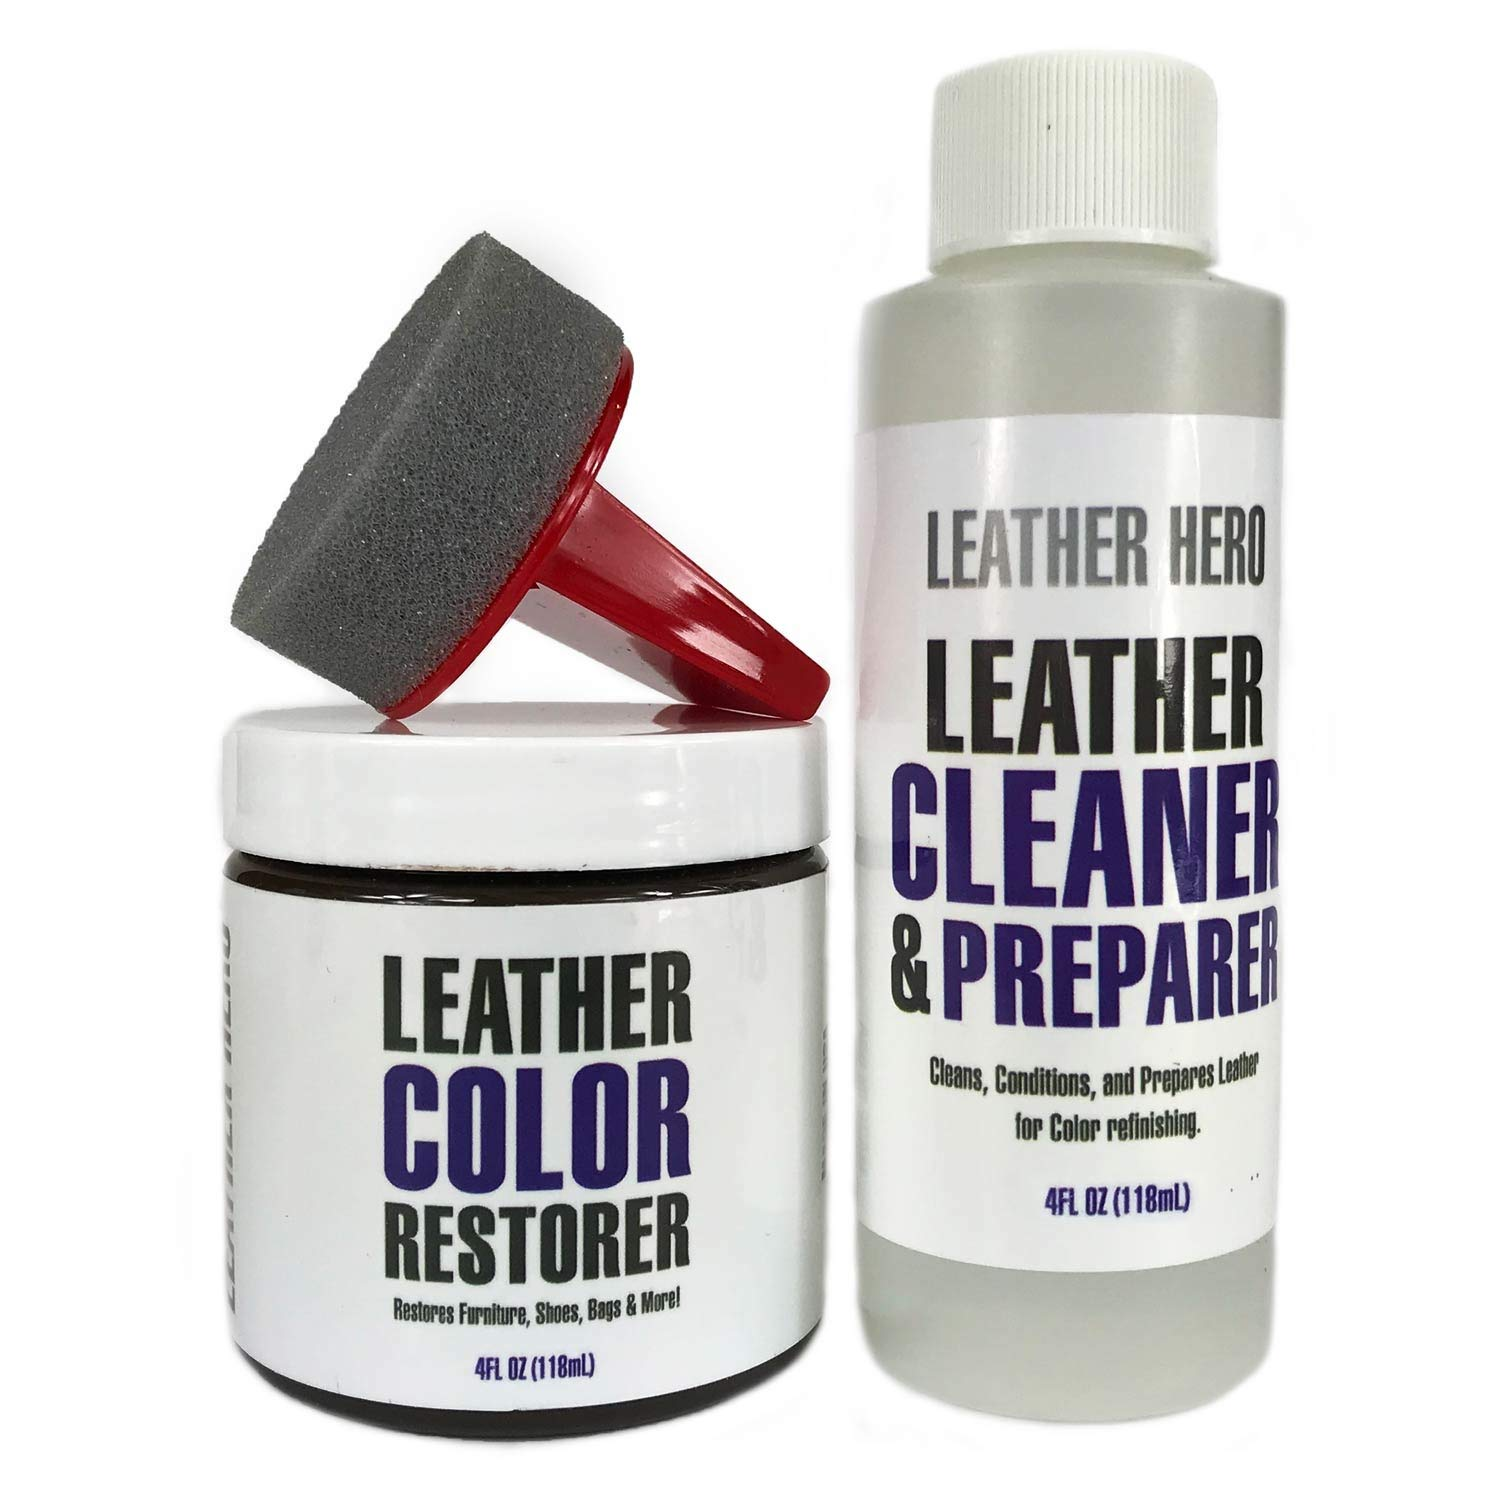 Leather Hero Leather Color Restorer Repair Kit- Refinish, Recolor, Renew Leather & Vinyl Sofa, Purse, Shoes, Auto Car Seats, Couch 4oz (Cream)